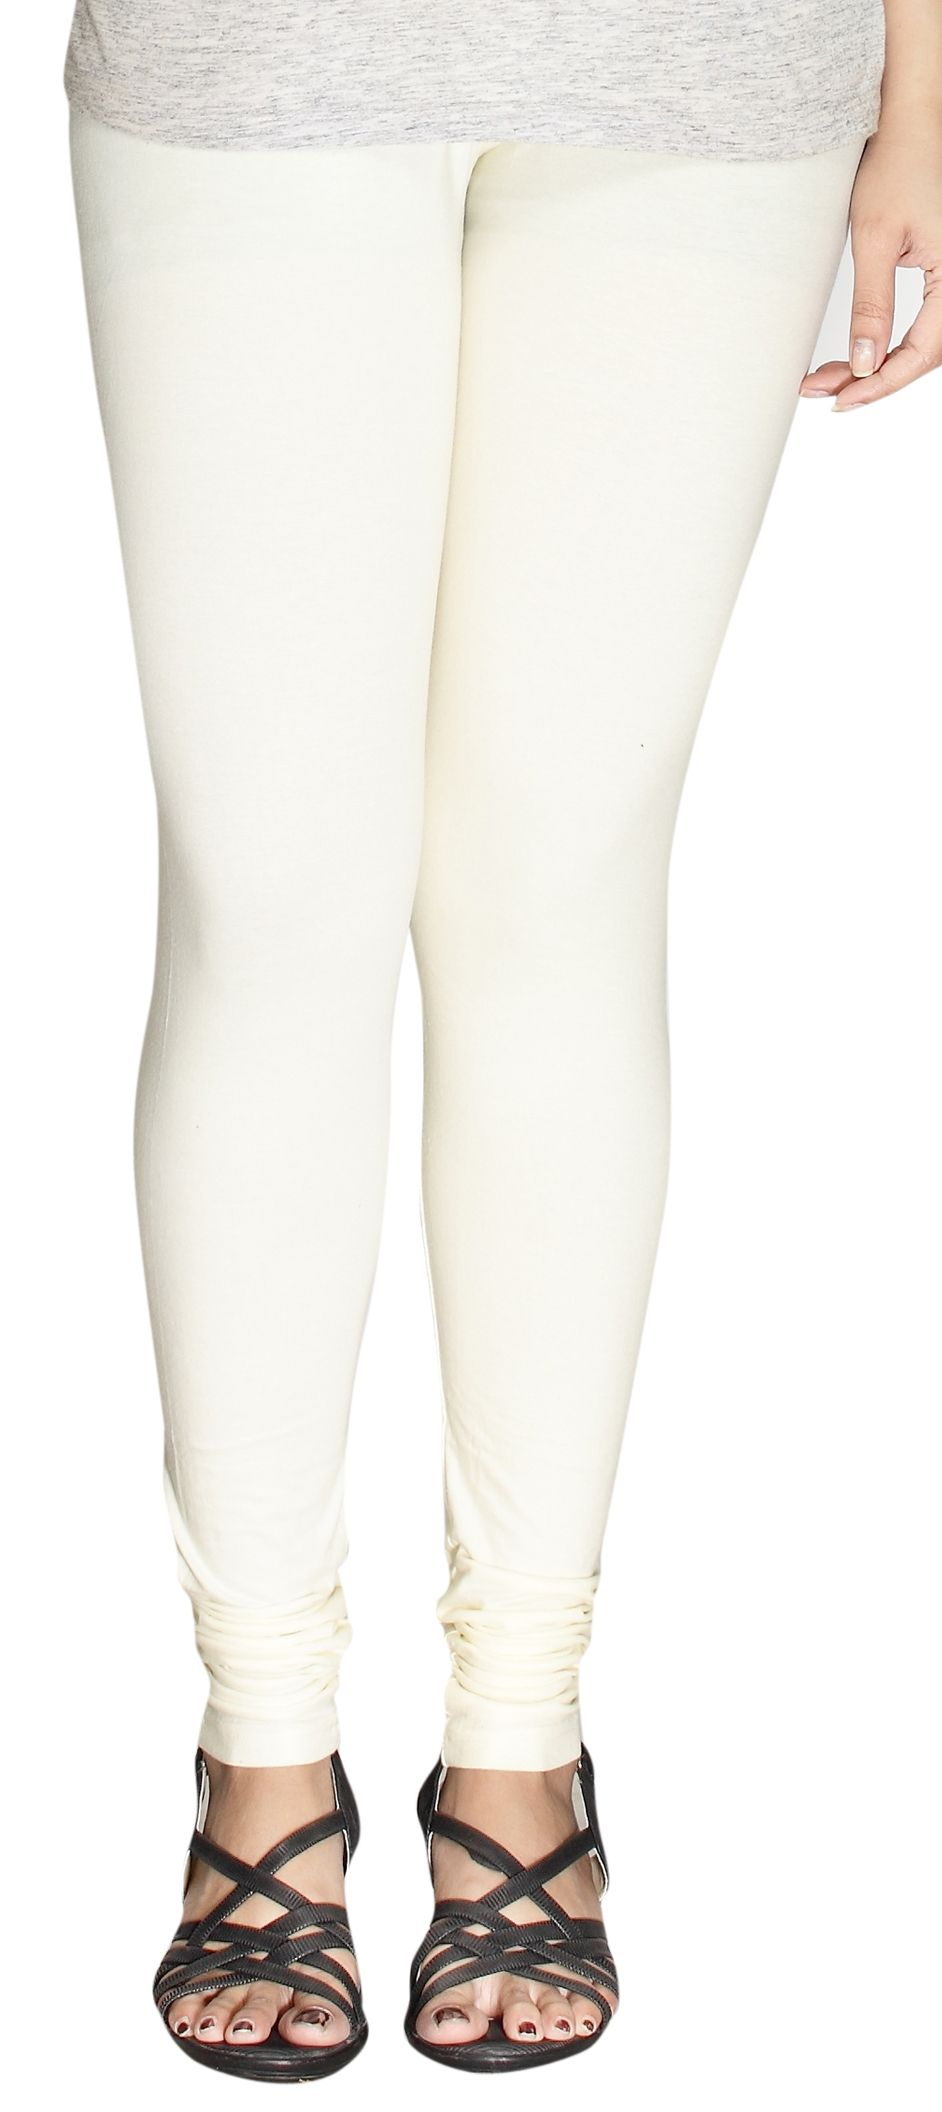 64e80383b186c 1518755: Casual White and Off White color Cotton fabric Leggings